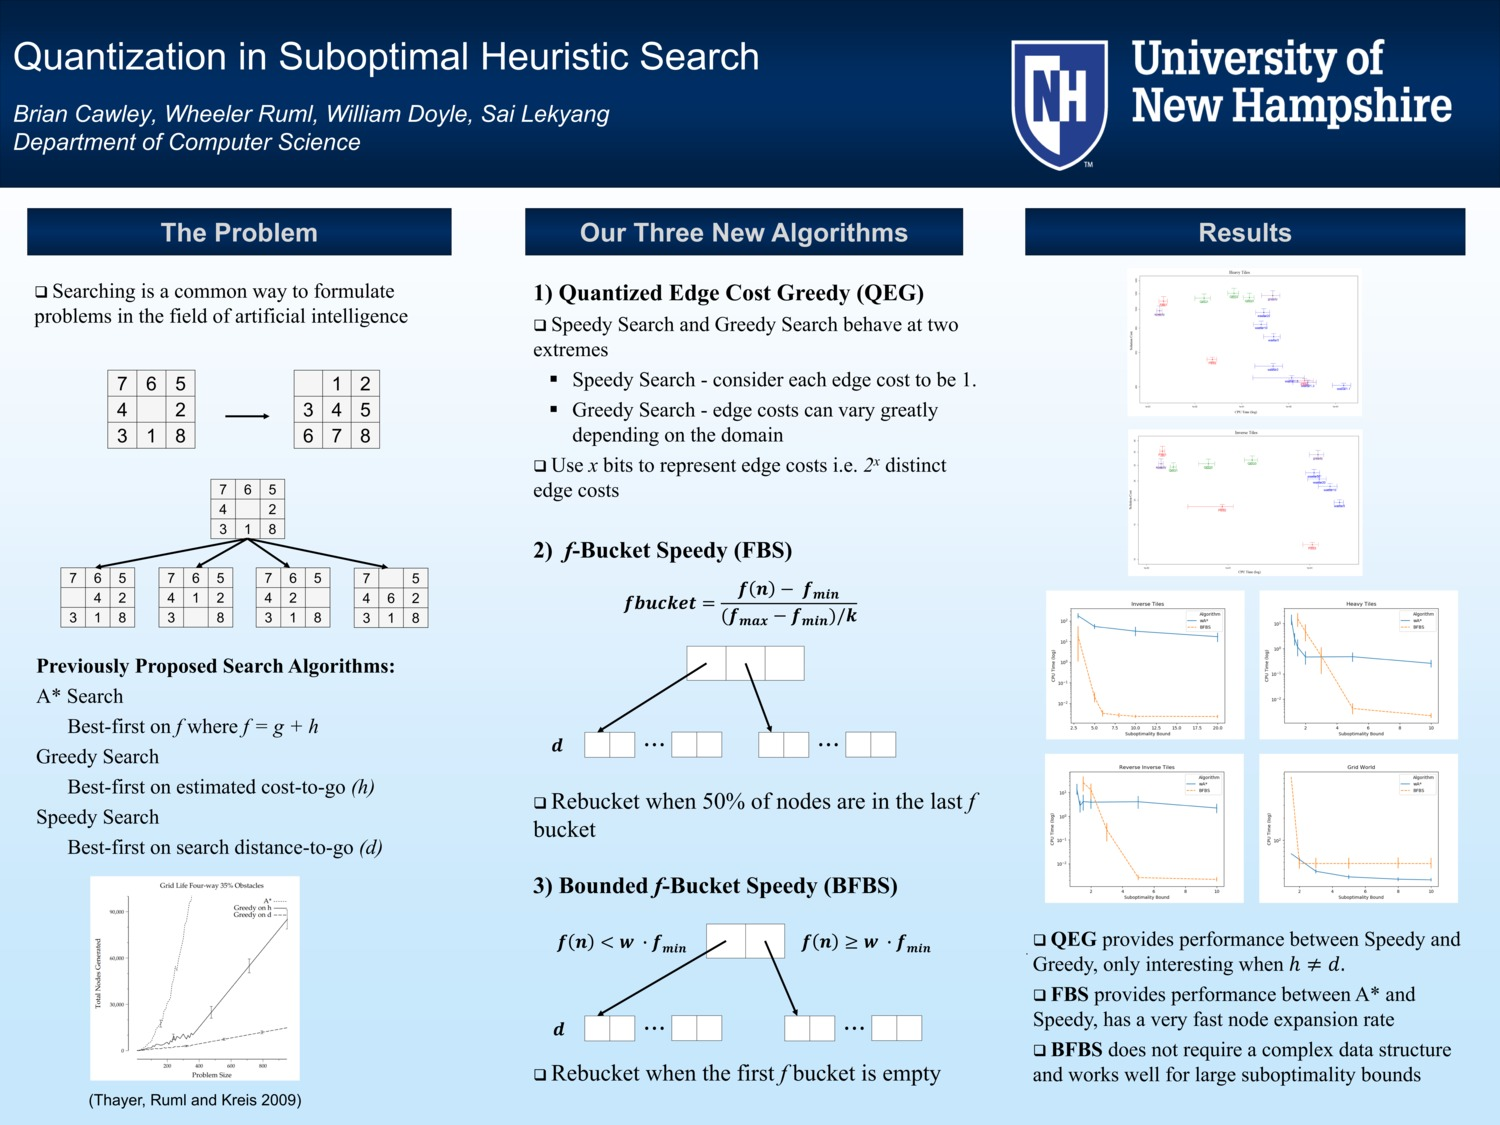 Quantization In Suboptimal Heuristic Search by bc1058